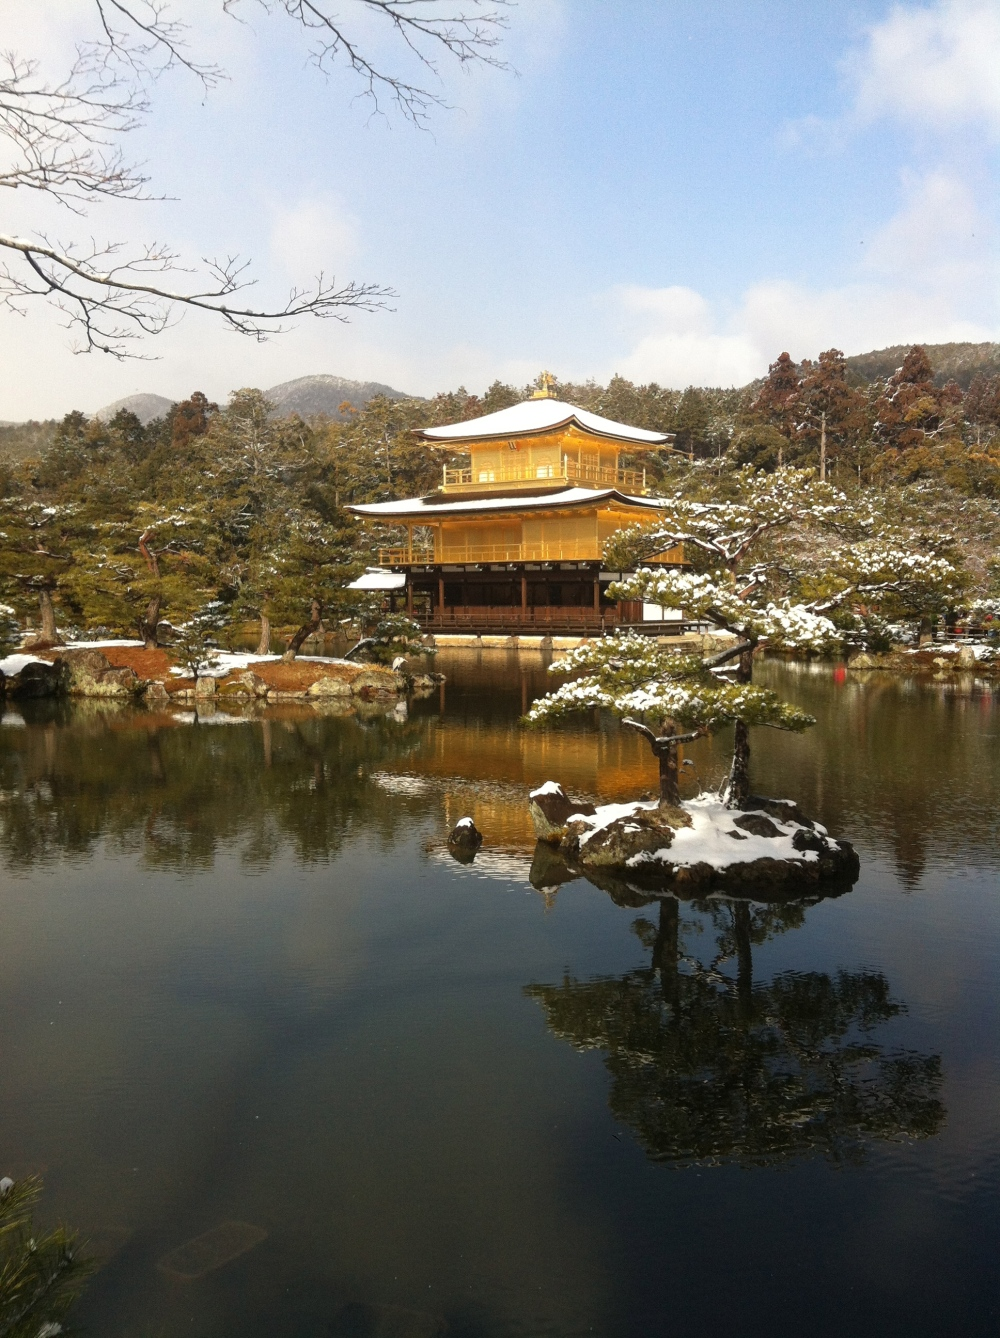 The Golden Pavilion in Kyoto. Photo by Cameron Carson.